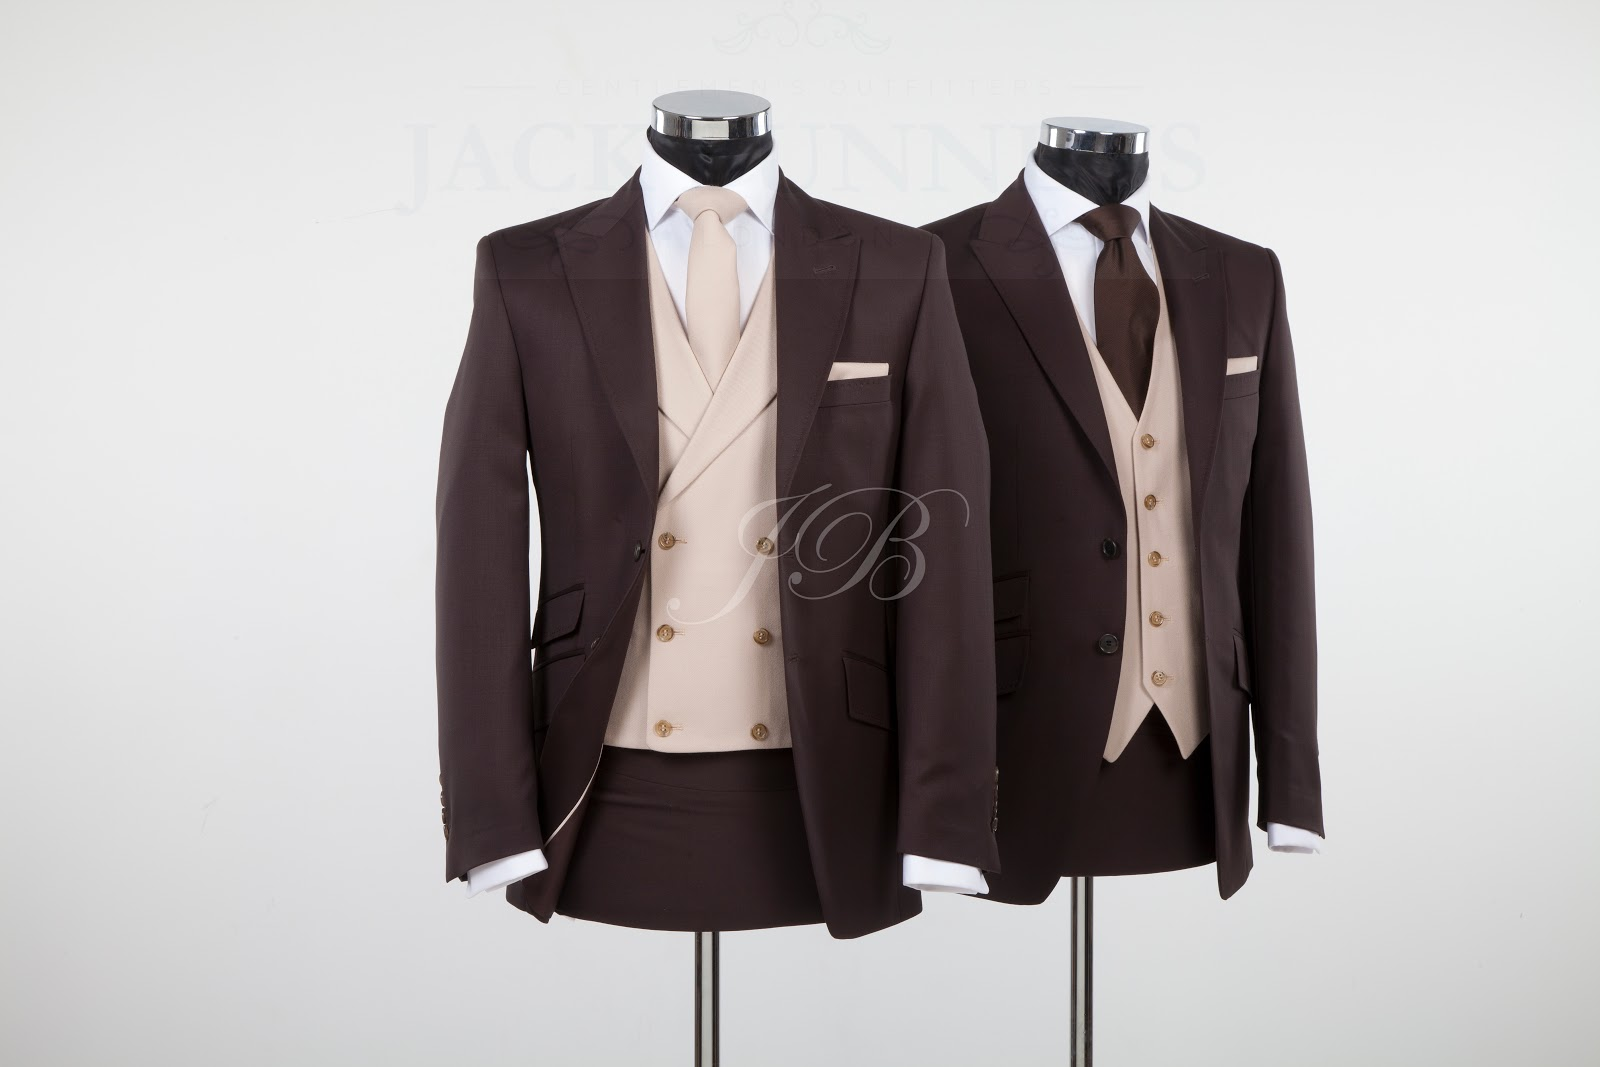 The Bunney Blog: Vintage Wedding Suit Hire *New for 2013* - The York